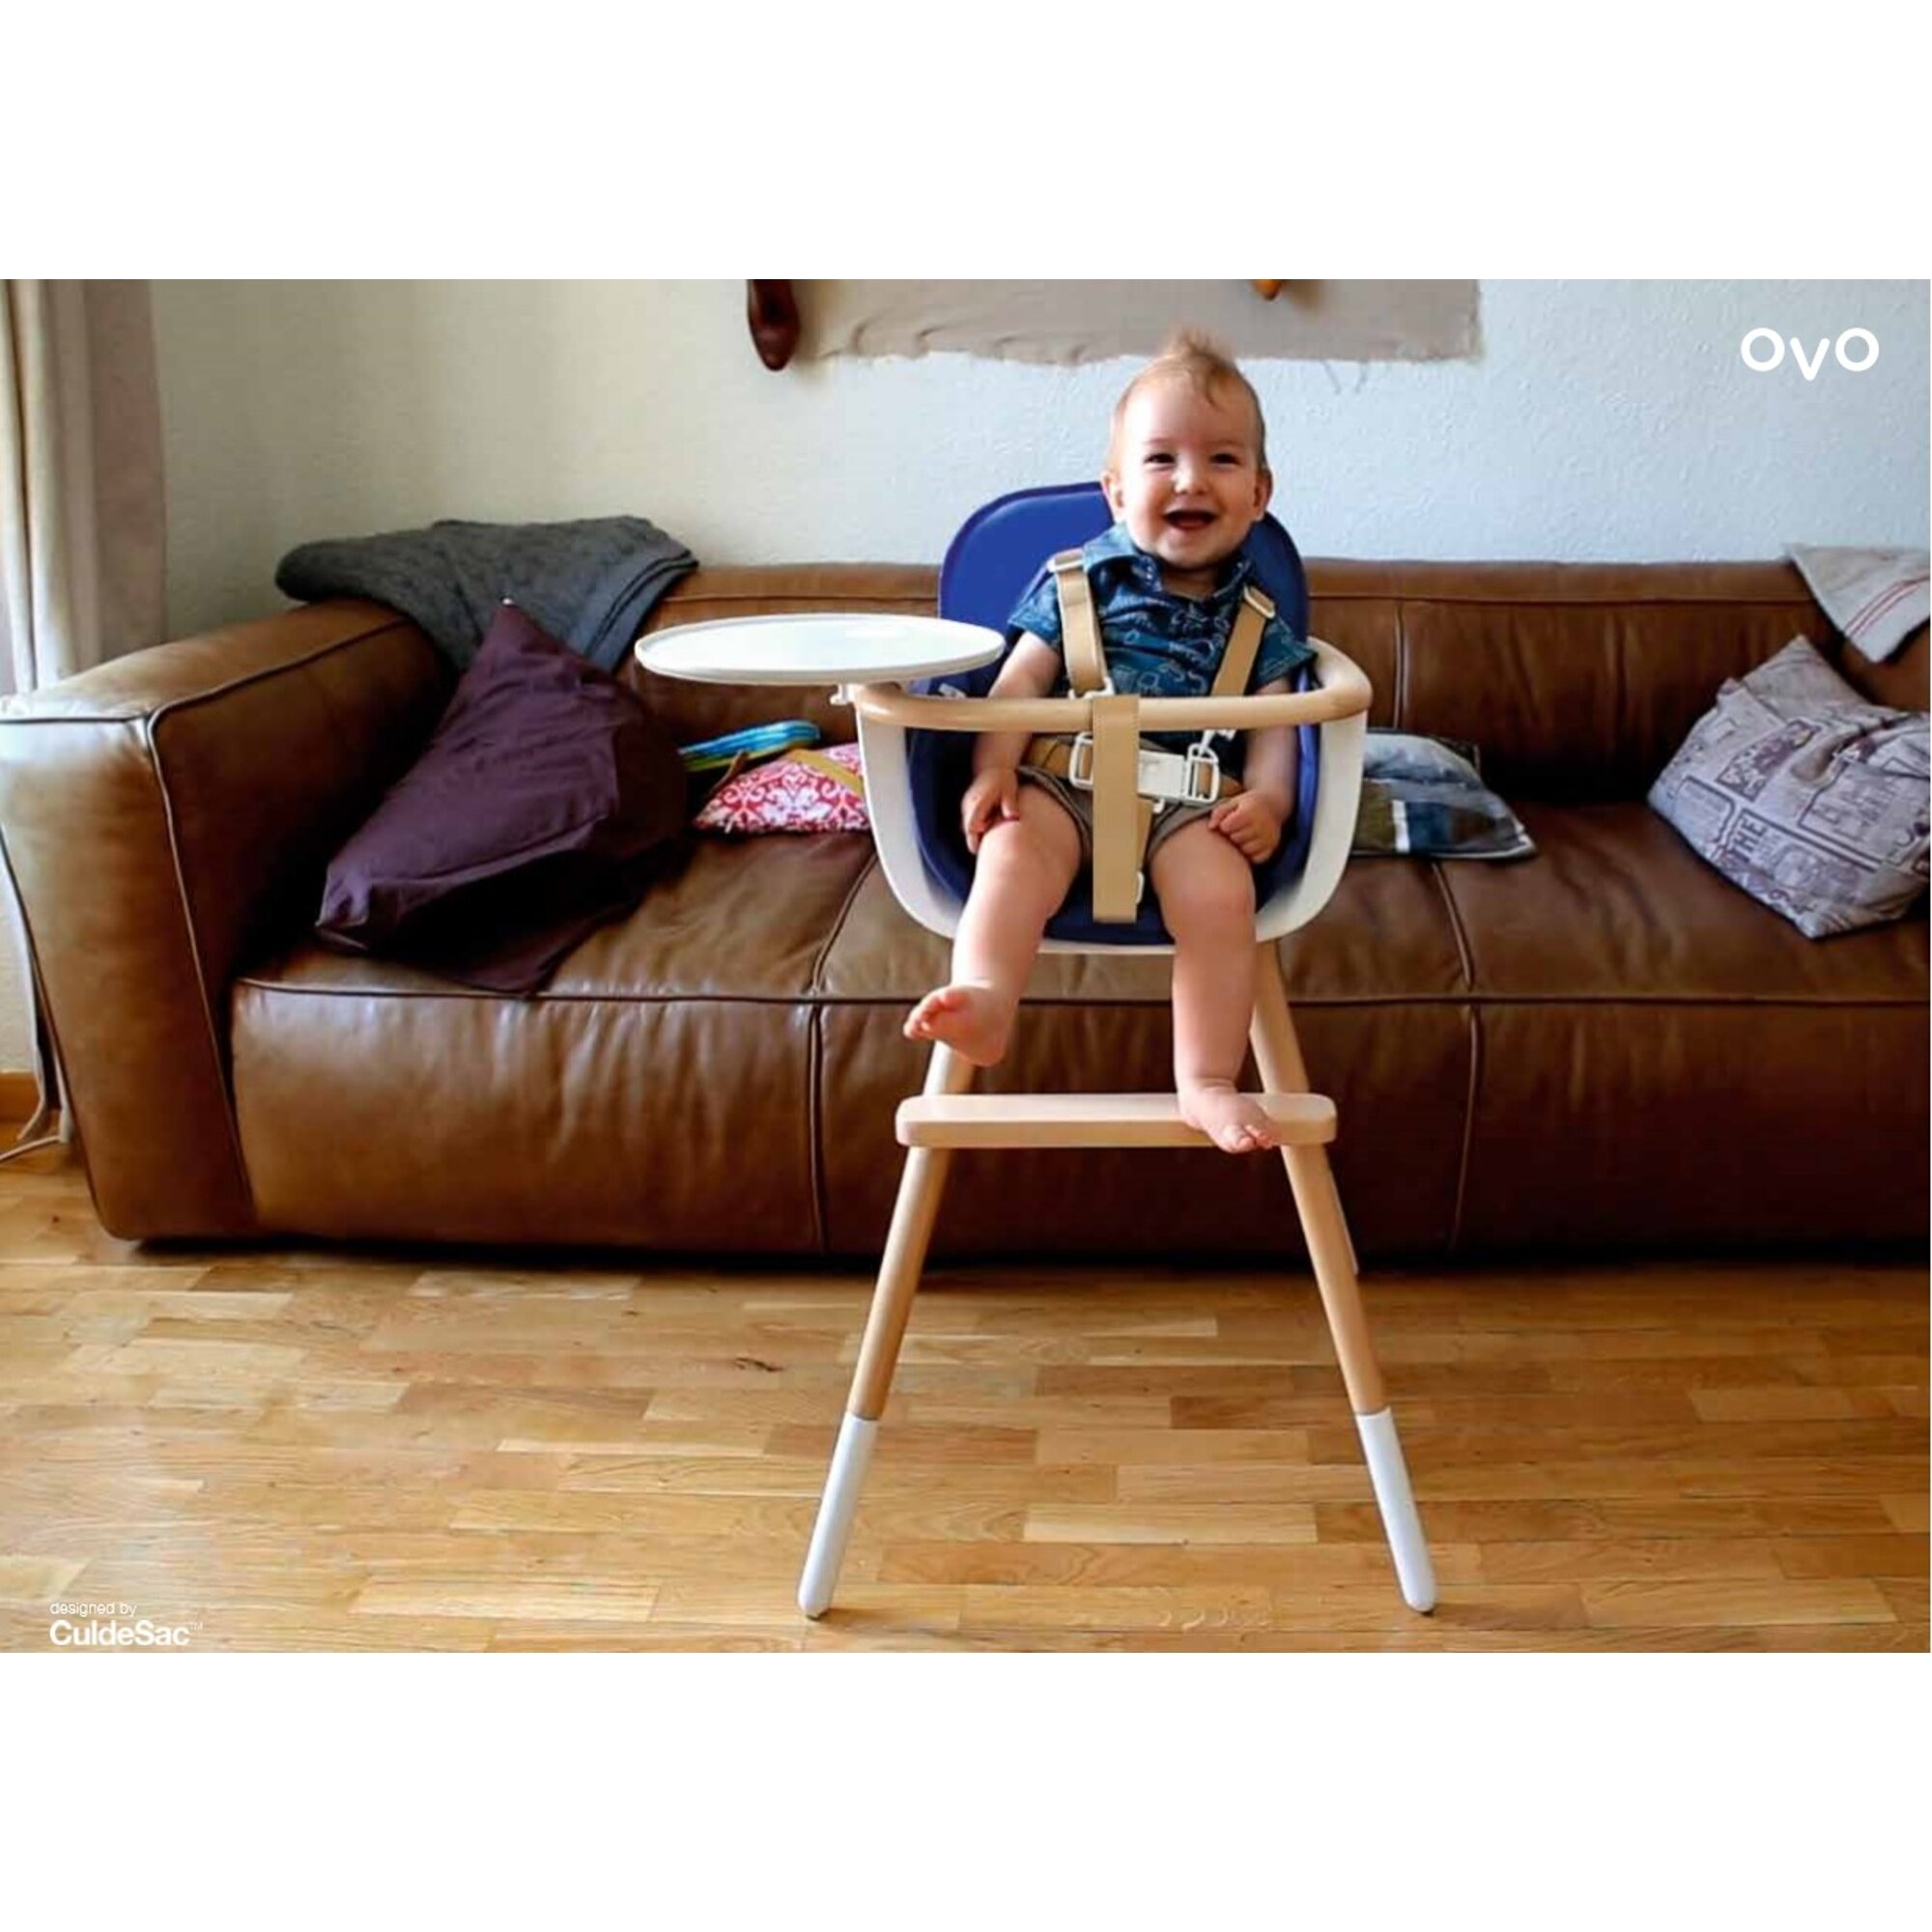 Ovo high chair reviews - Ovo One High Chair